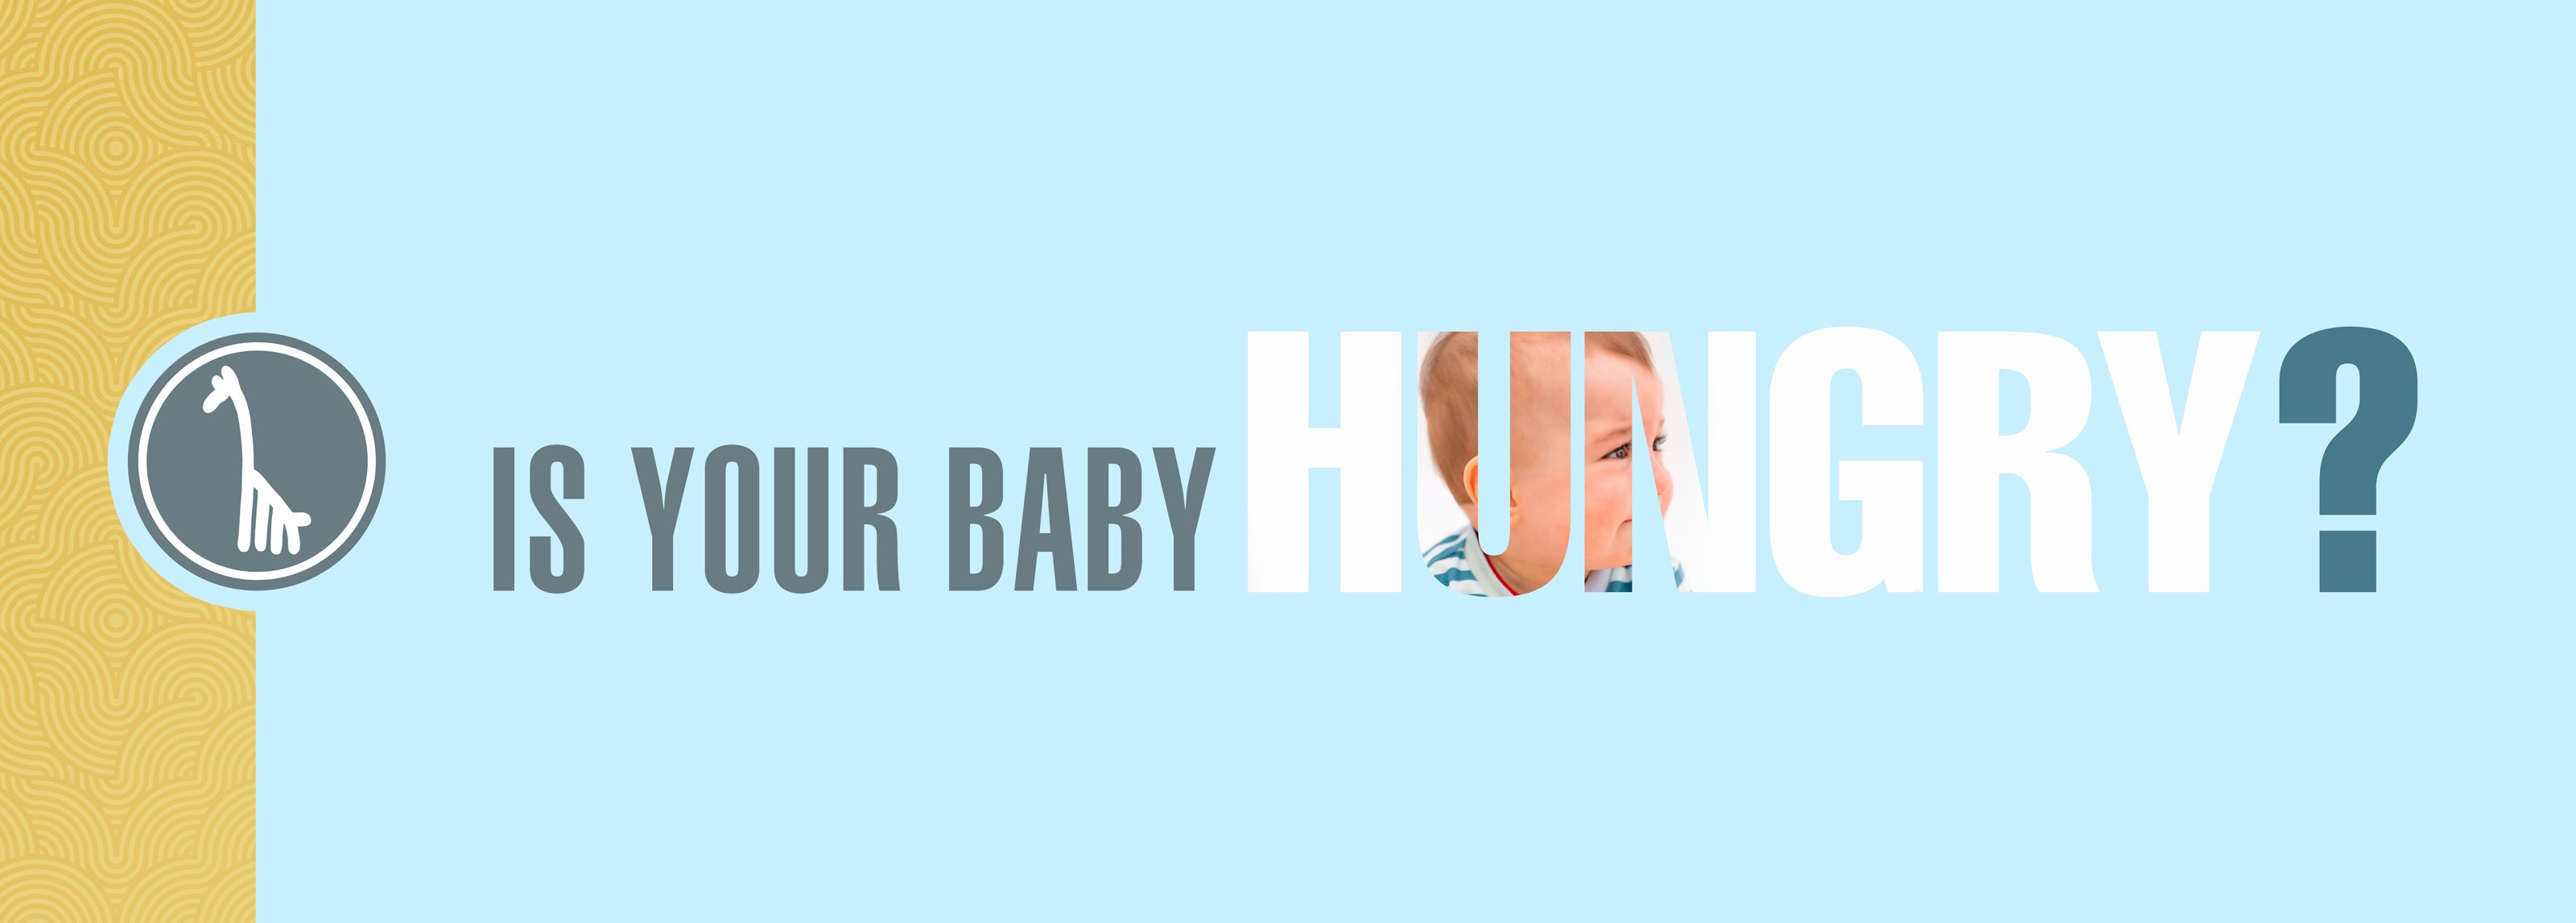 Is your baby hungry?